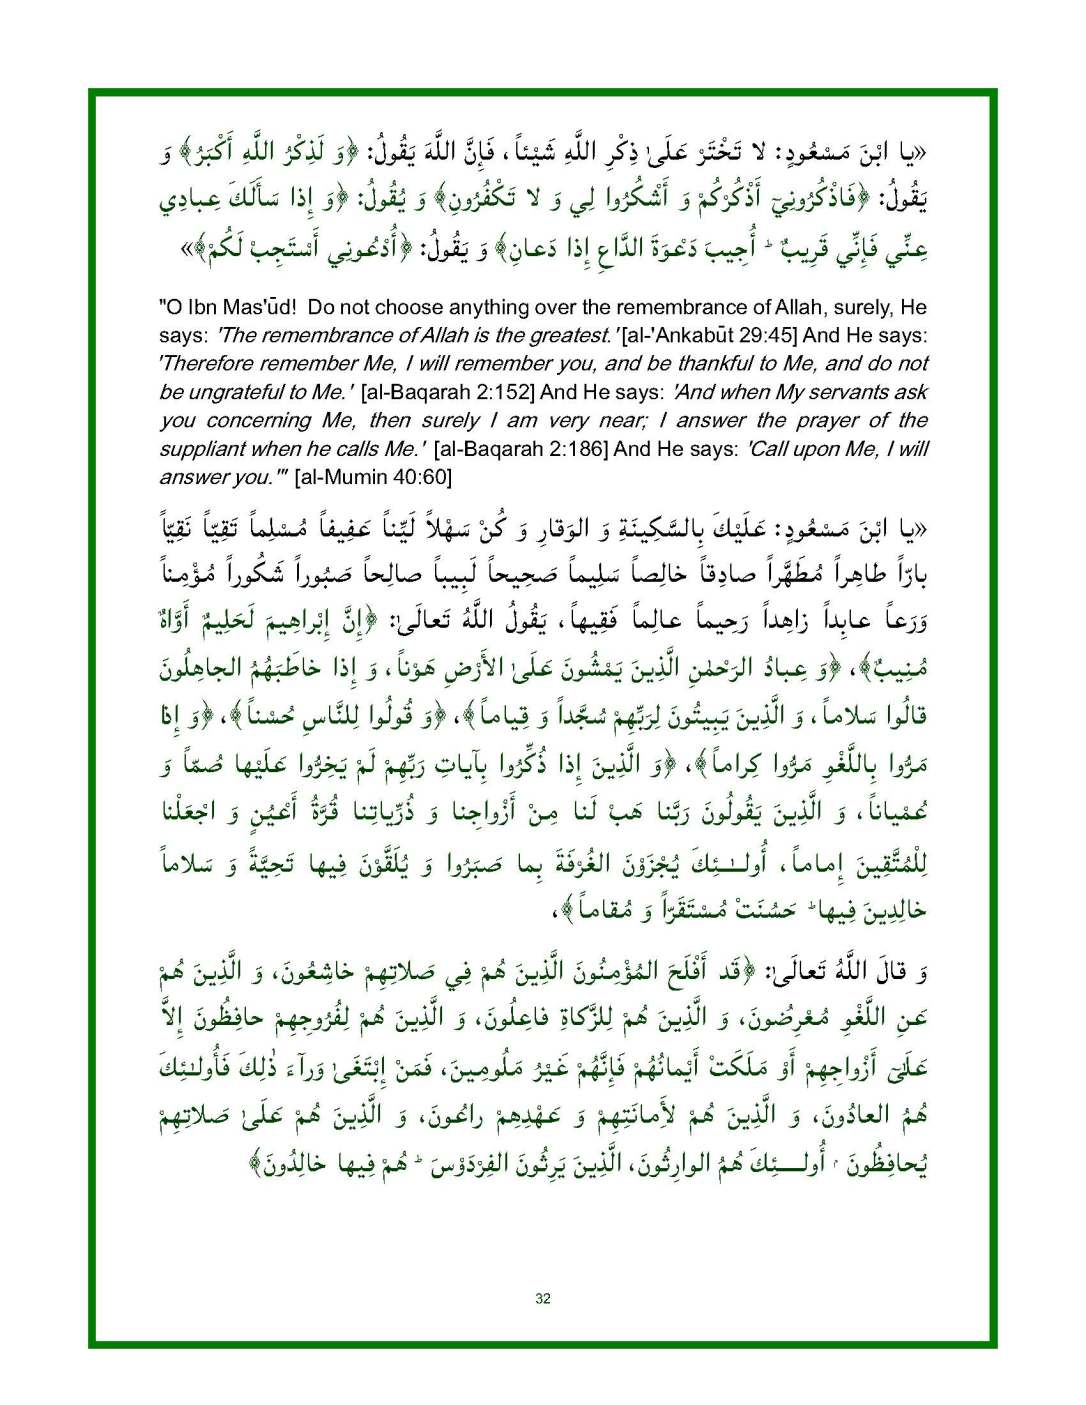 Spiritual-Advice-of-the-Messenger-of-Allah-for-Ibn-Masud-unlocked_Page_32